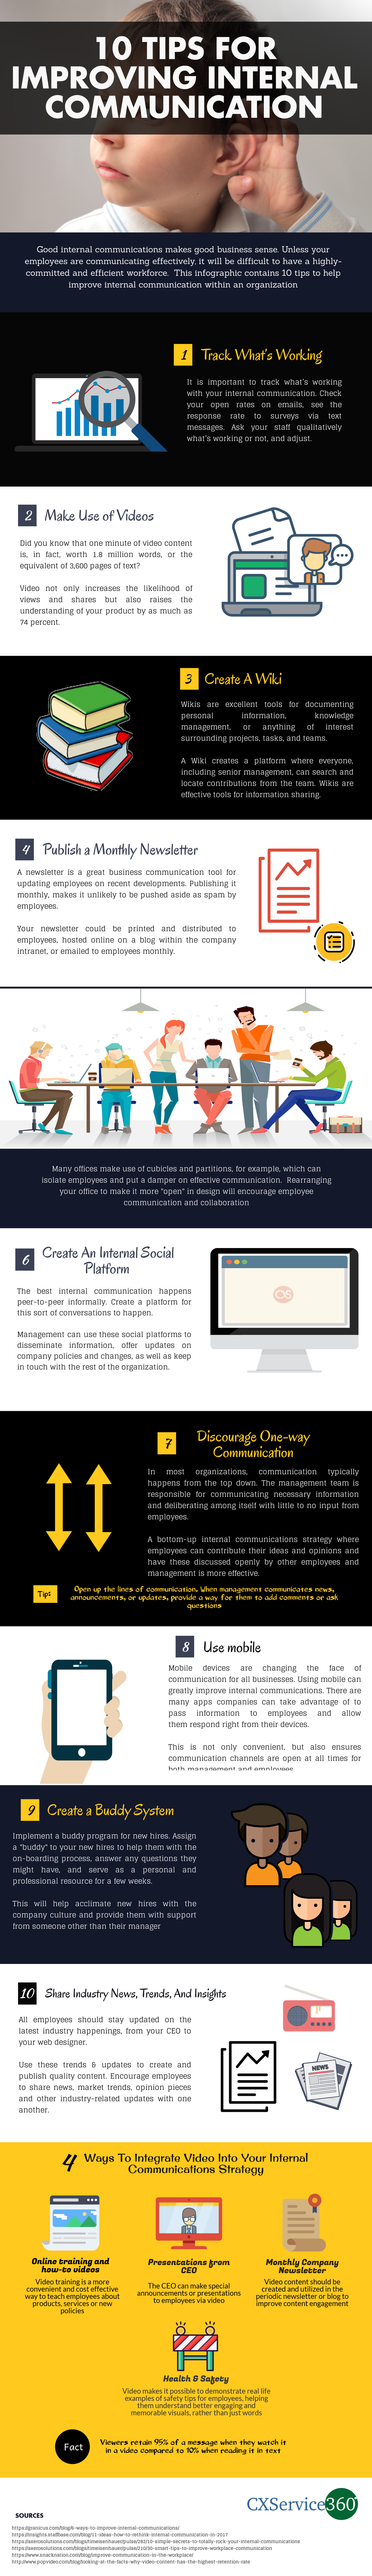 10 Tips For Improving Internal Communication [Infographic